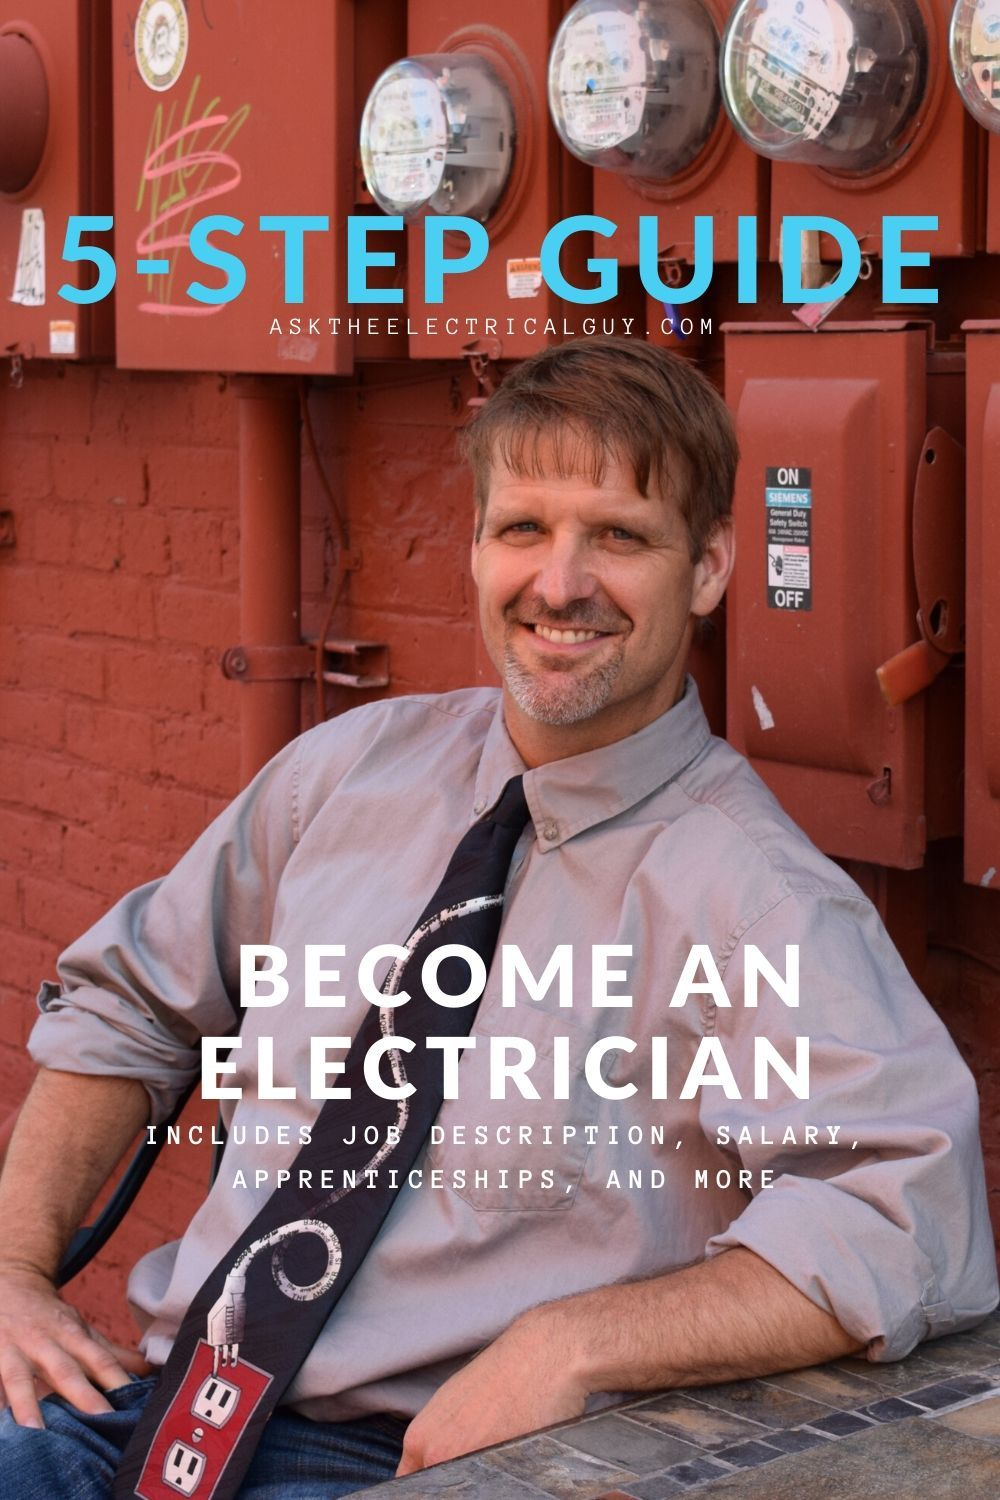 How to an Electrician Complete 5 Step Guide Page 1